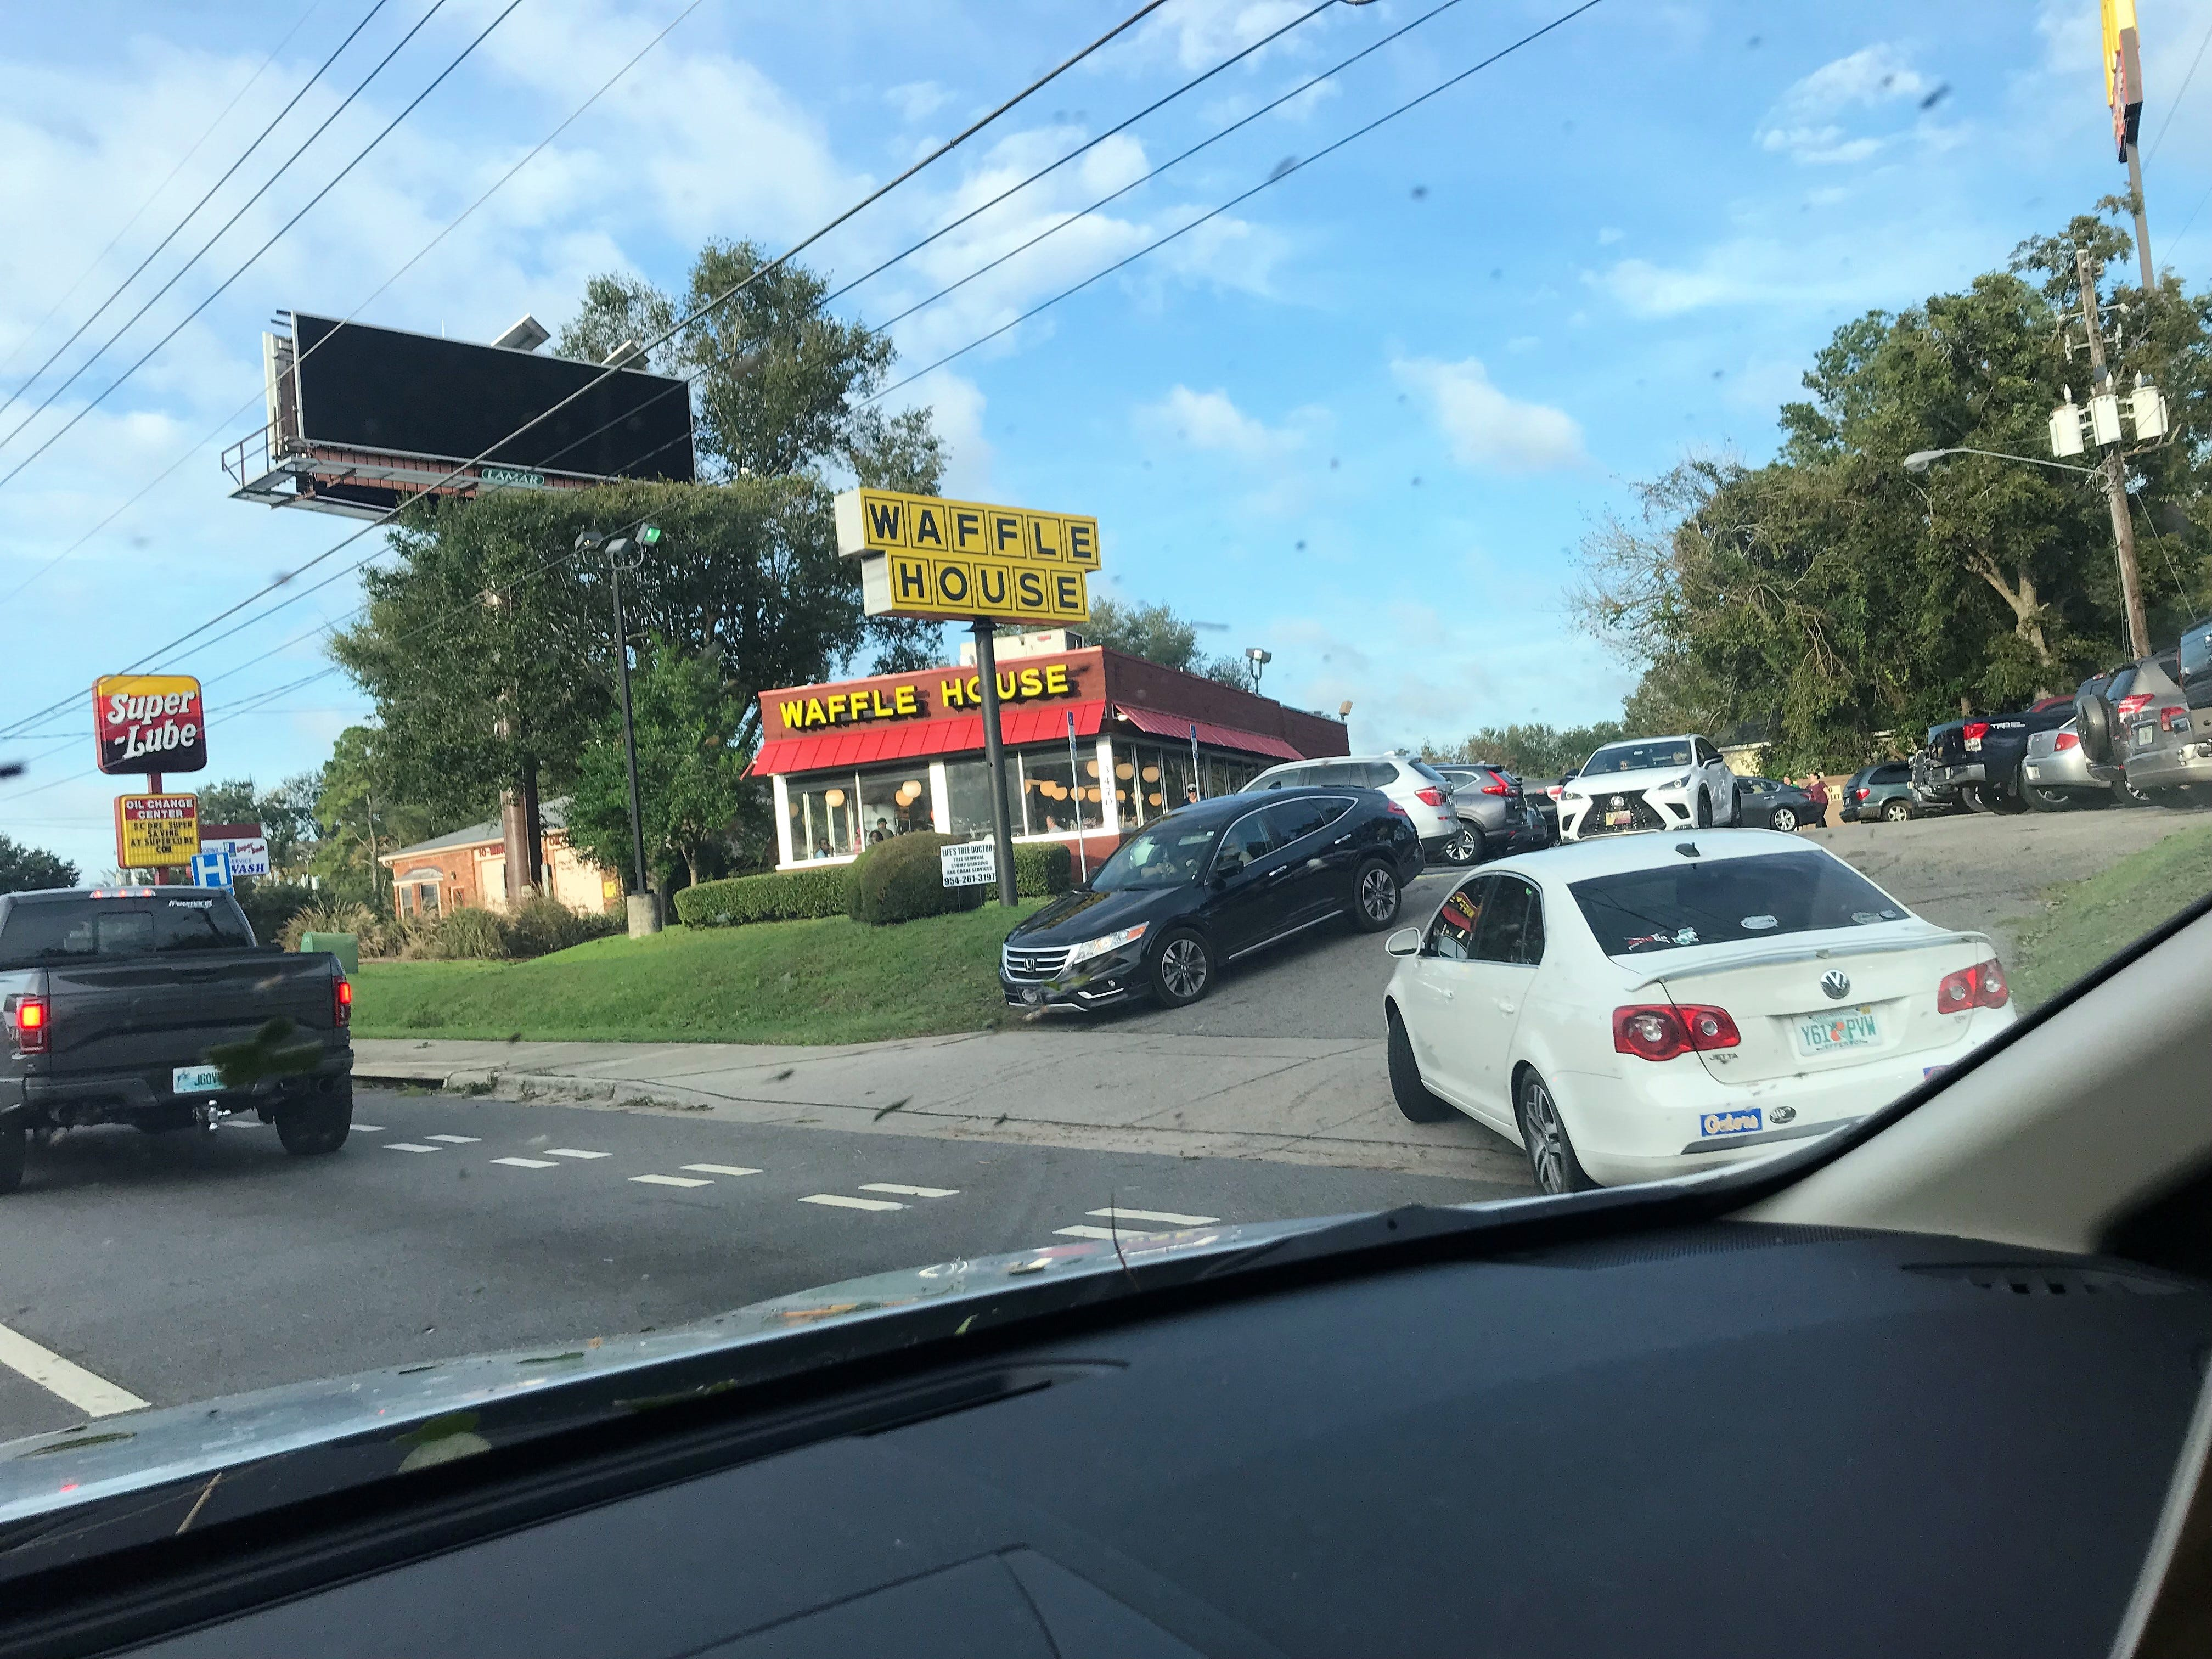 Tallahassee residents converge on Waffle House in North East Tallahassee.